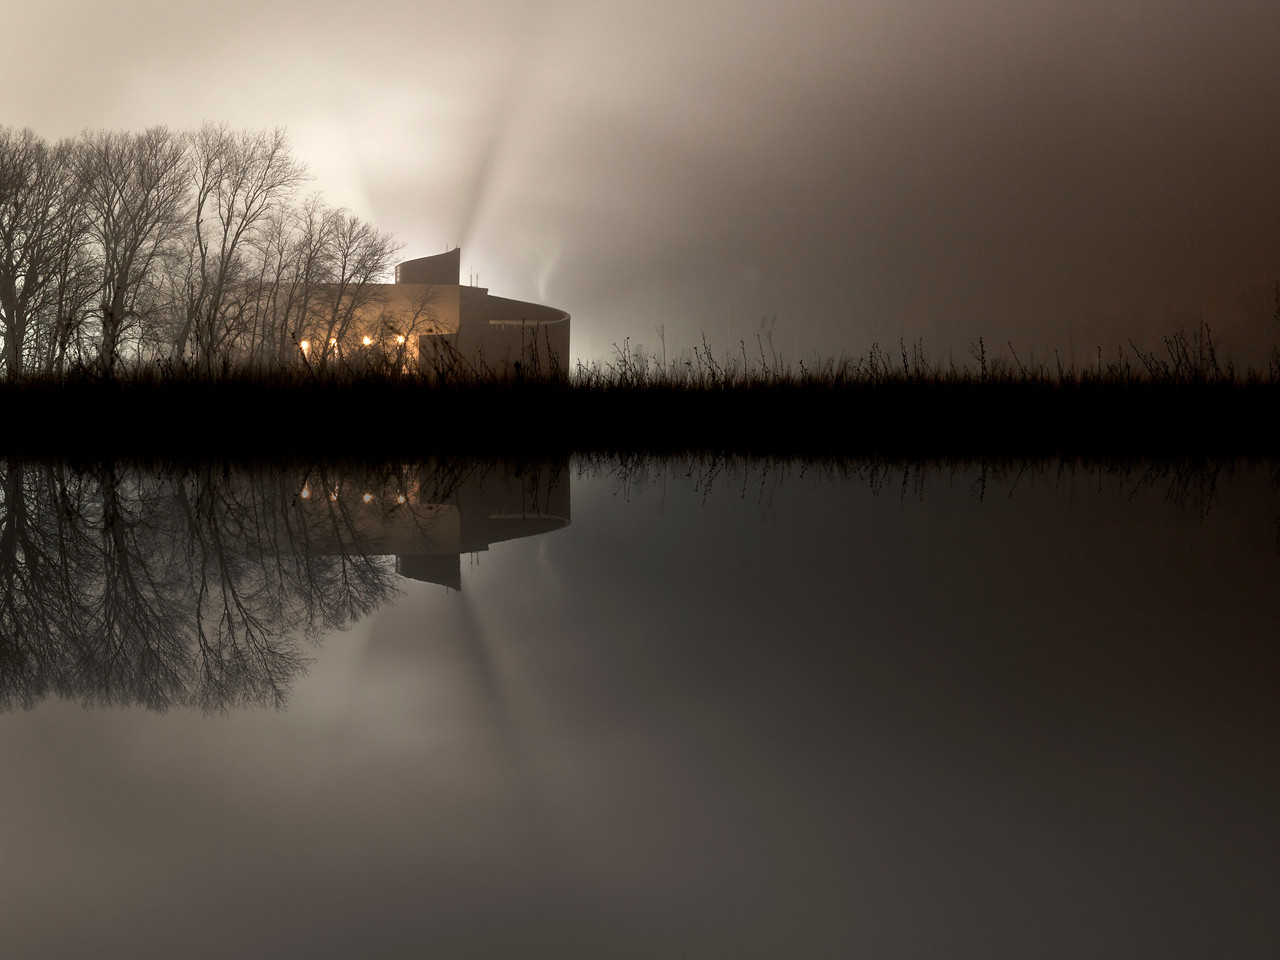 Fermilab, MINOS service building in fog.  I created the perception of a pond reflection.